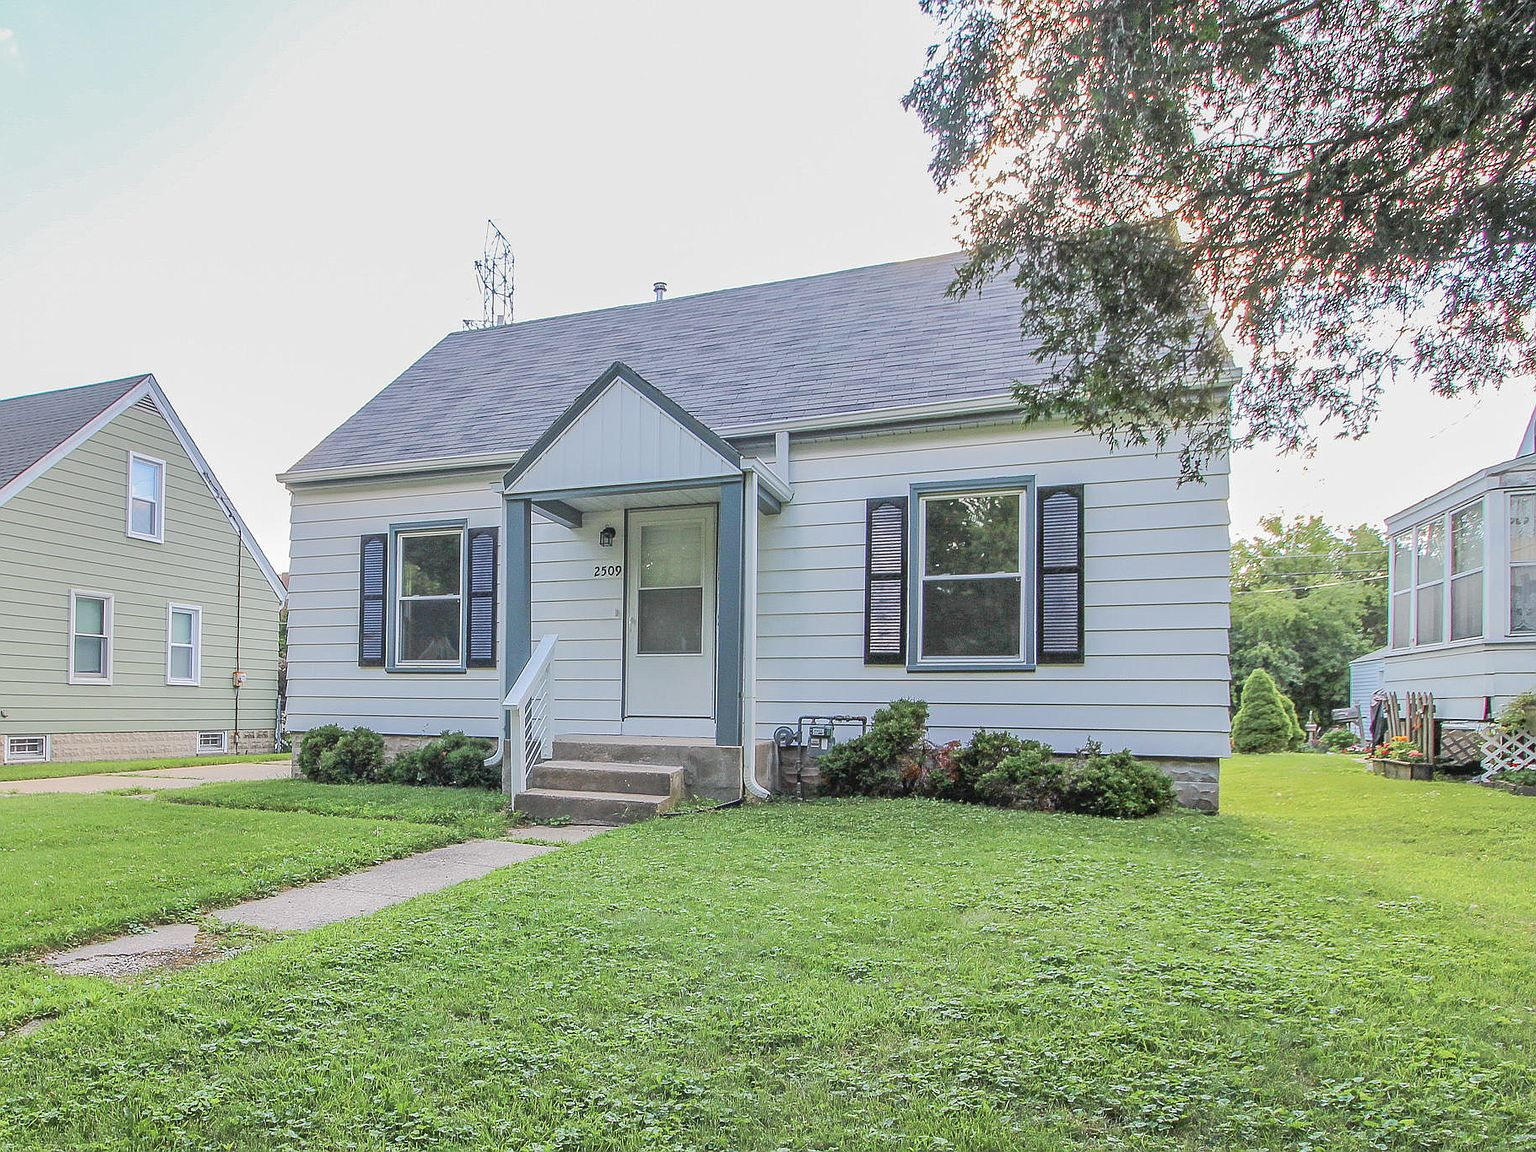 2509 S 99th St West Allis Wi 53227 Mls 1700687 Zillow